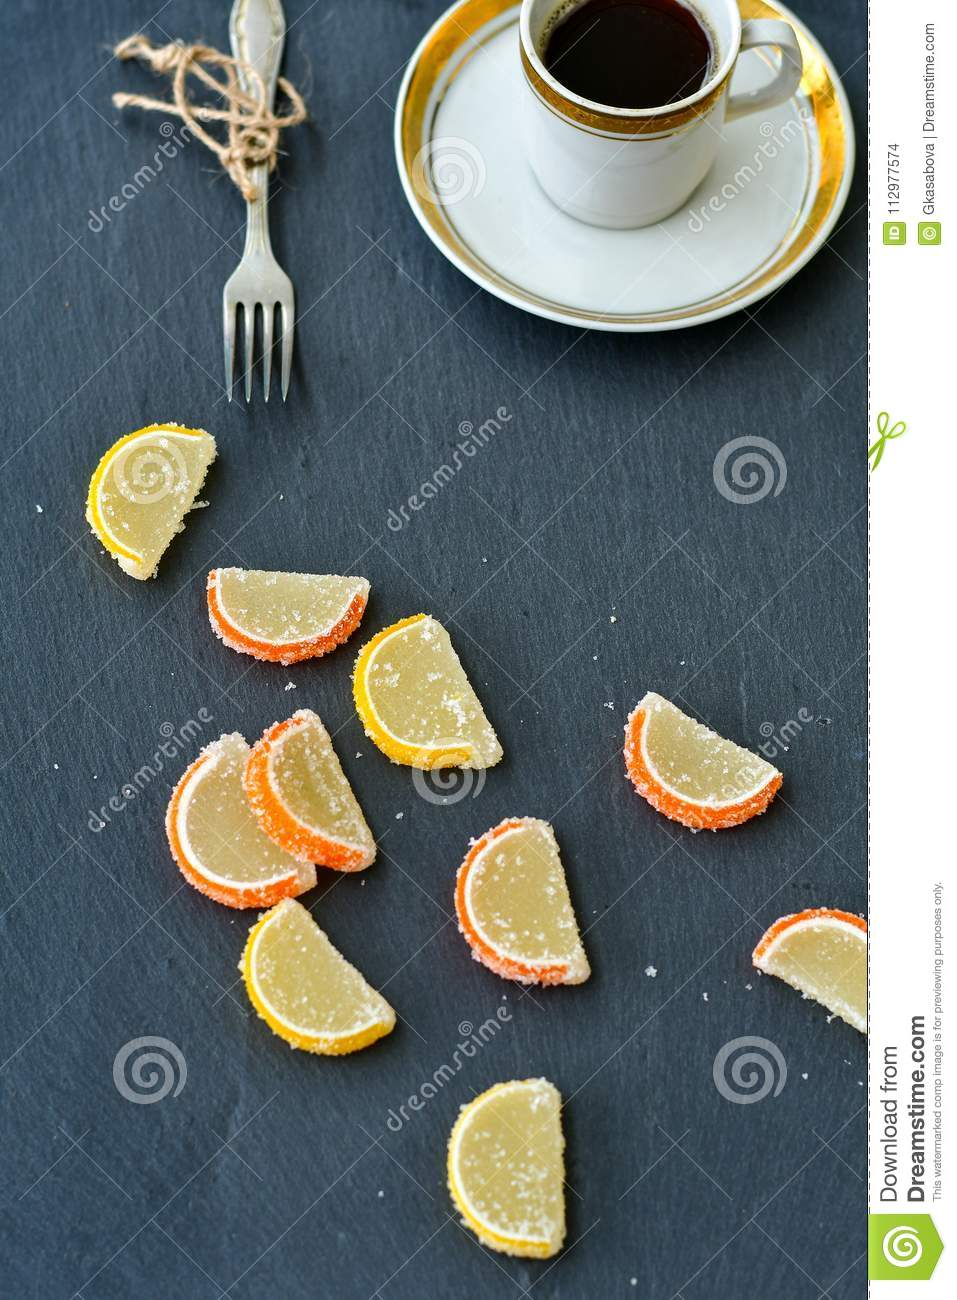 Lemon slices and cup of coffee